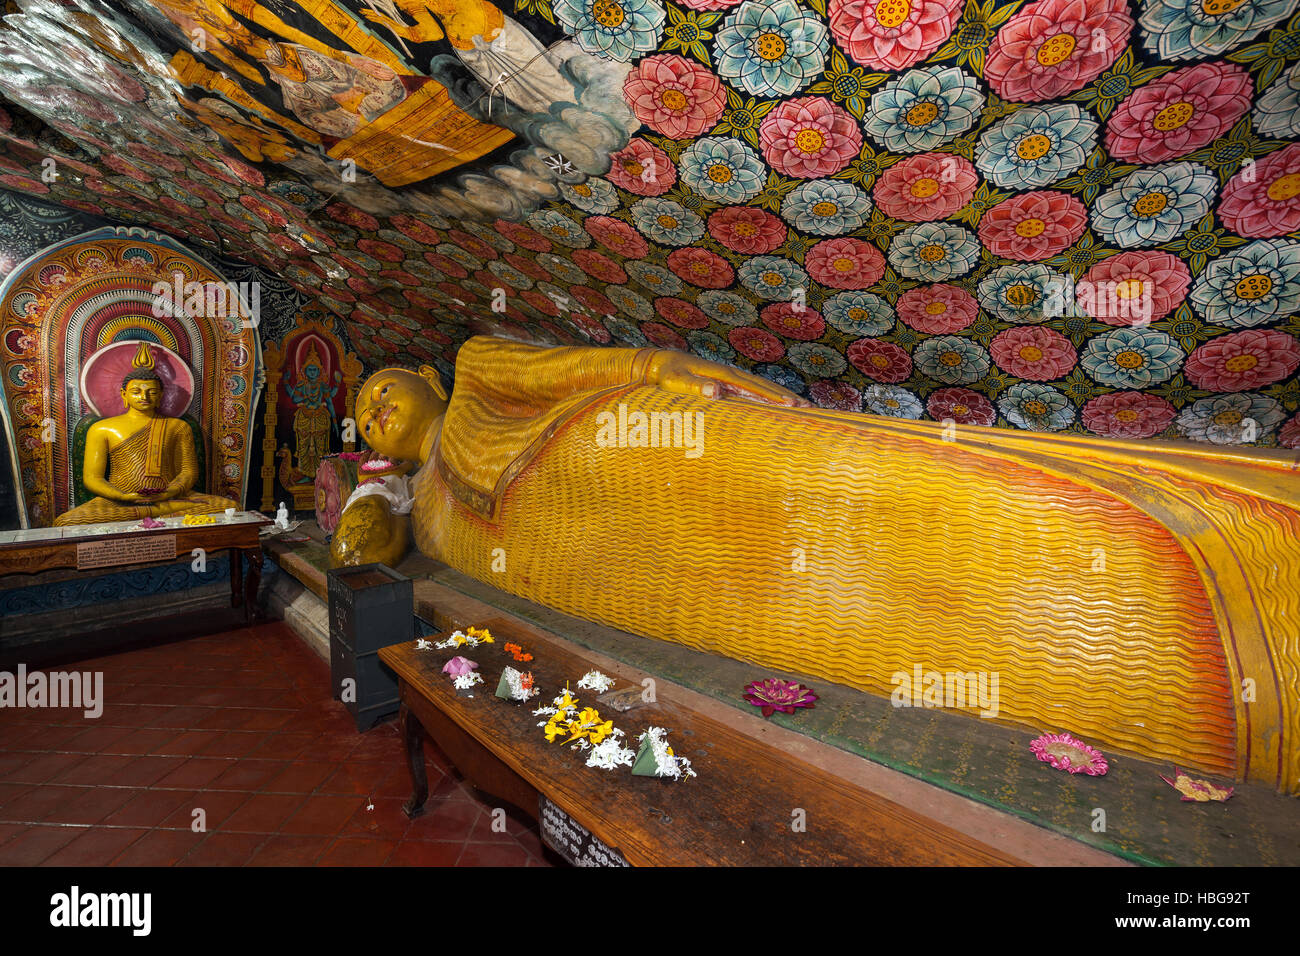 Reclining Buddha statue, painted ceilings, statues, Aluvihara Rock Cave Temple, Central Province, Sri Lanka - Stock Image